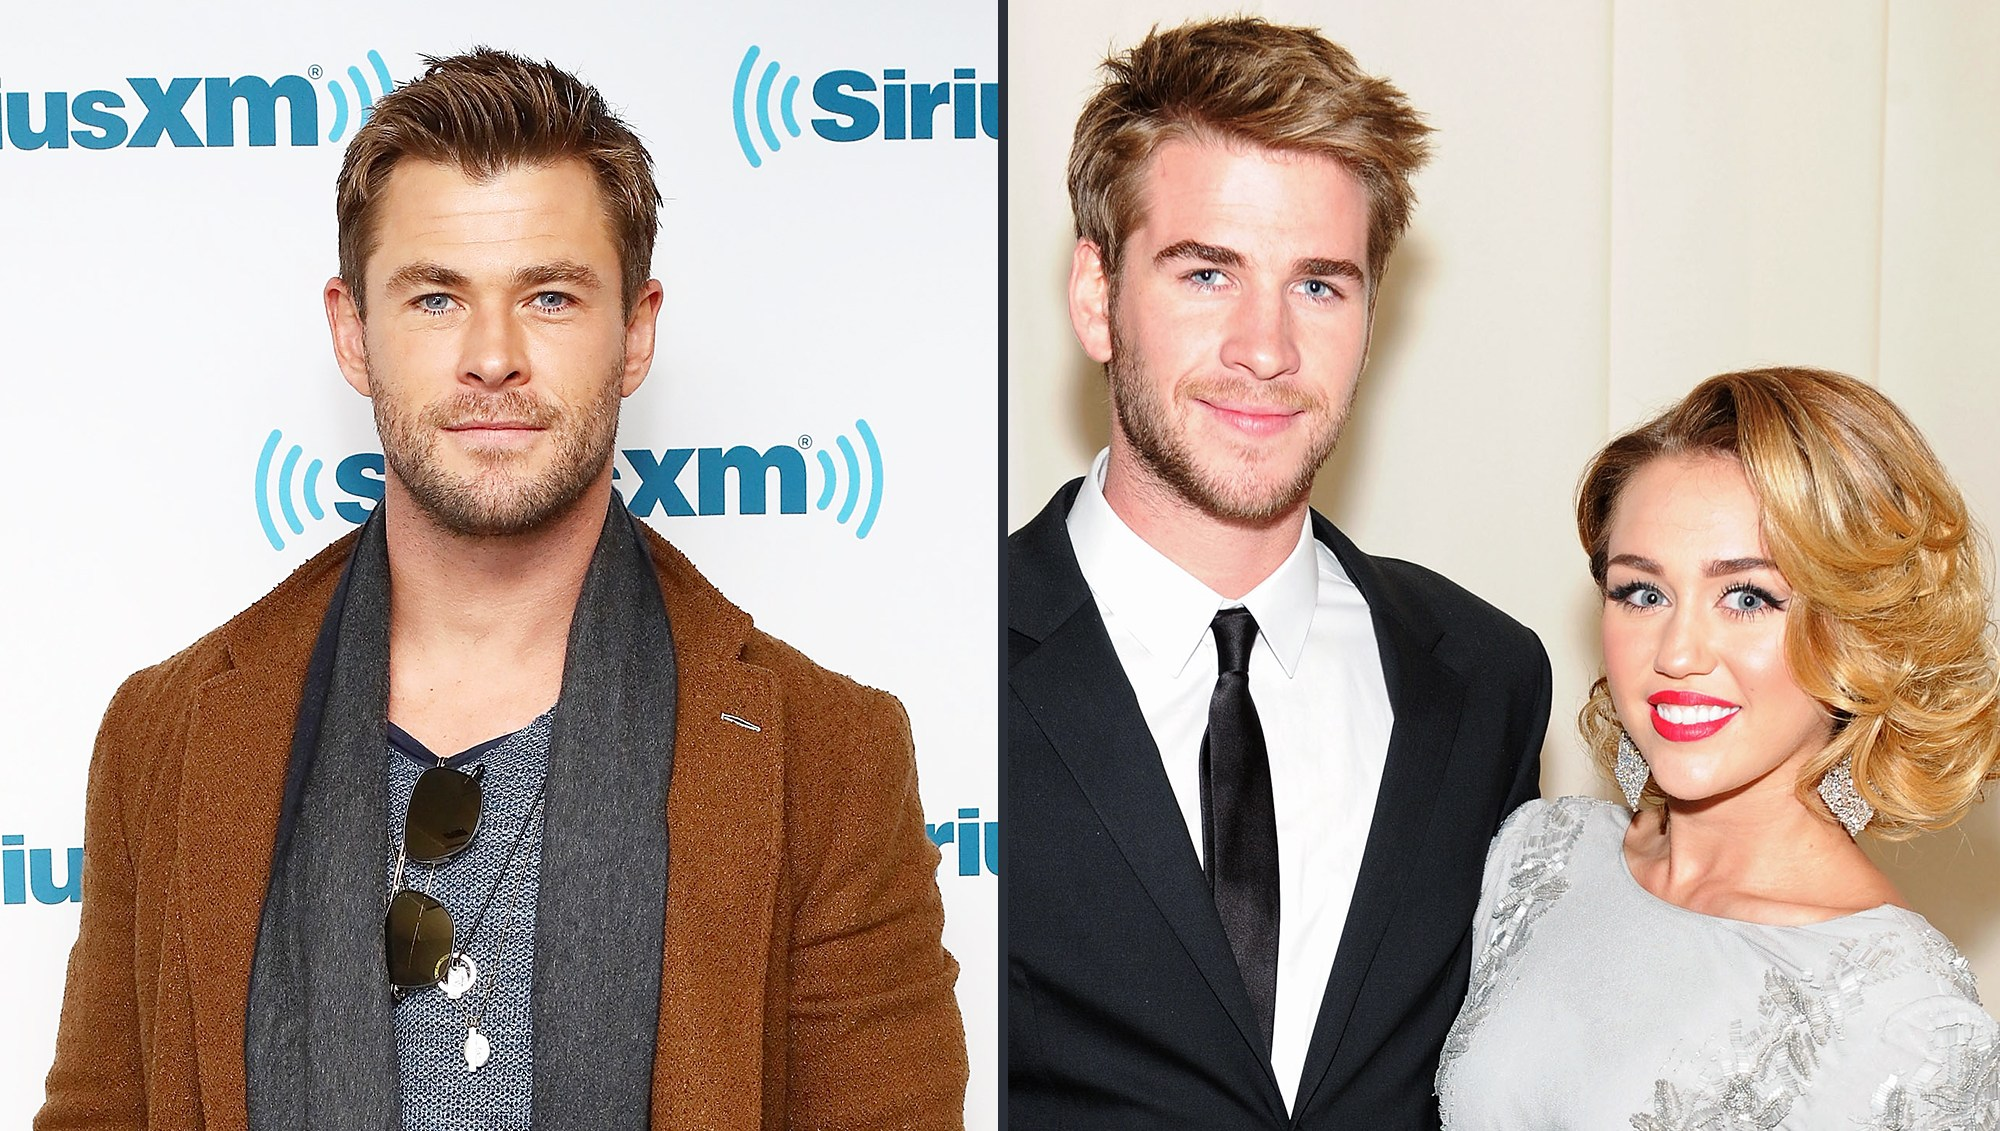 Chris Hemsworth Shuts Down Miley Cyrus Liam Hemsworth Wedding Rumors